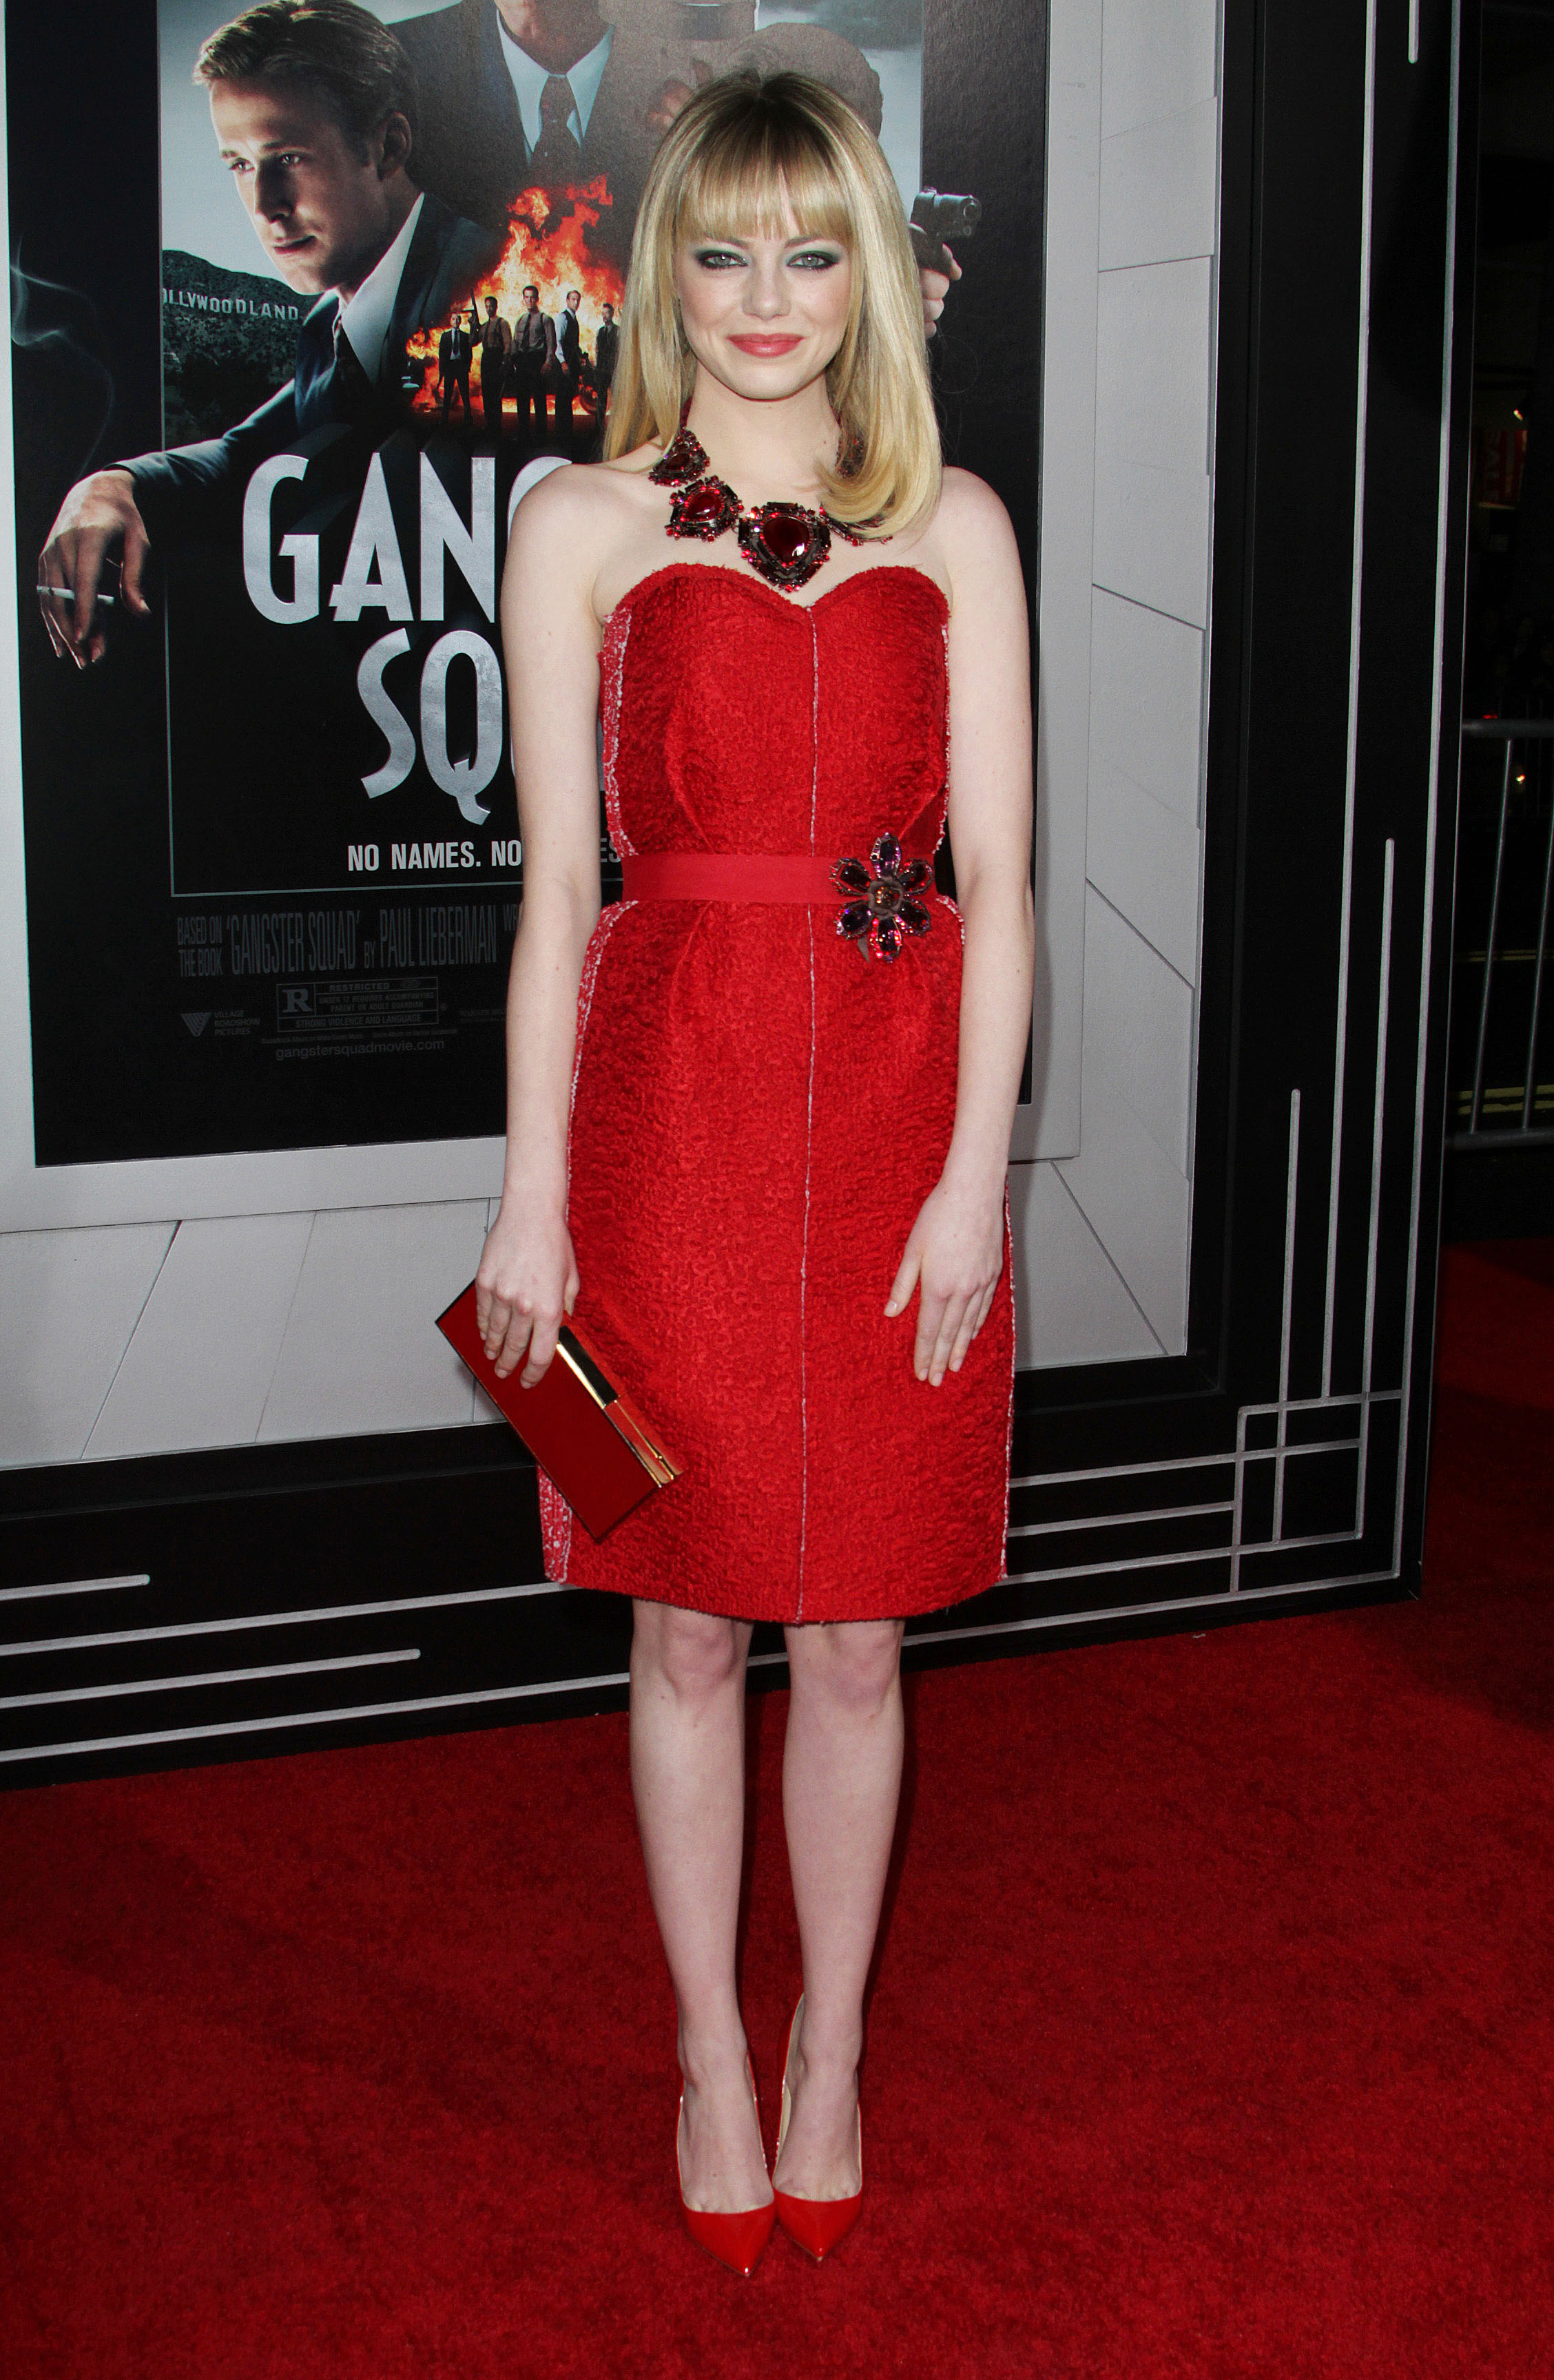 Emma Stone, Gangster Squad, Smoky Eyes, Red Lanvin Dress, Red Carpet